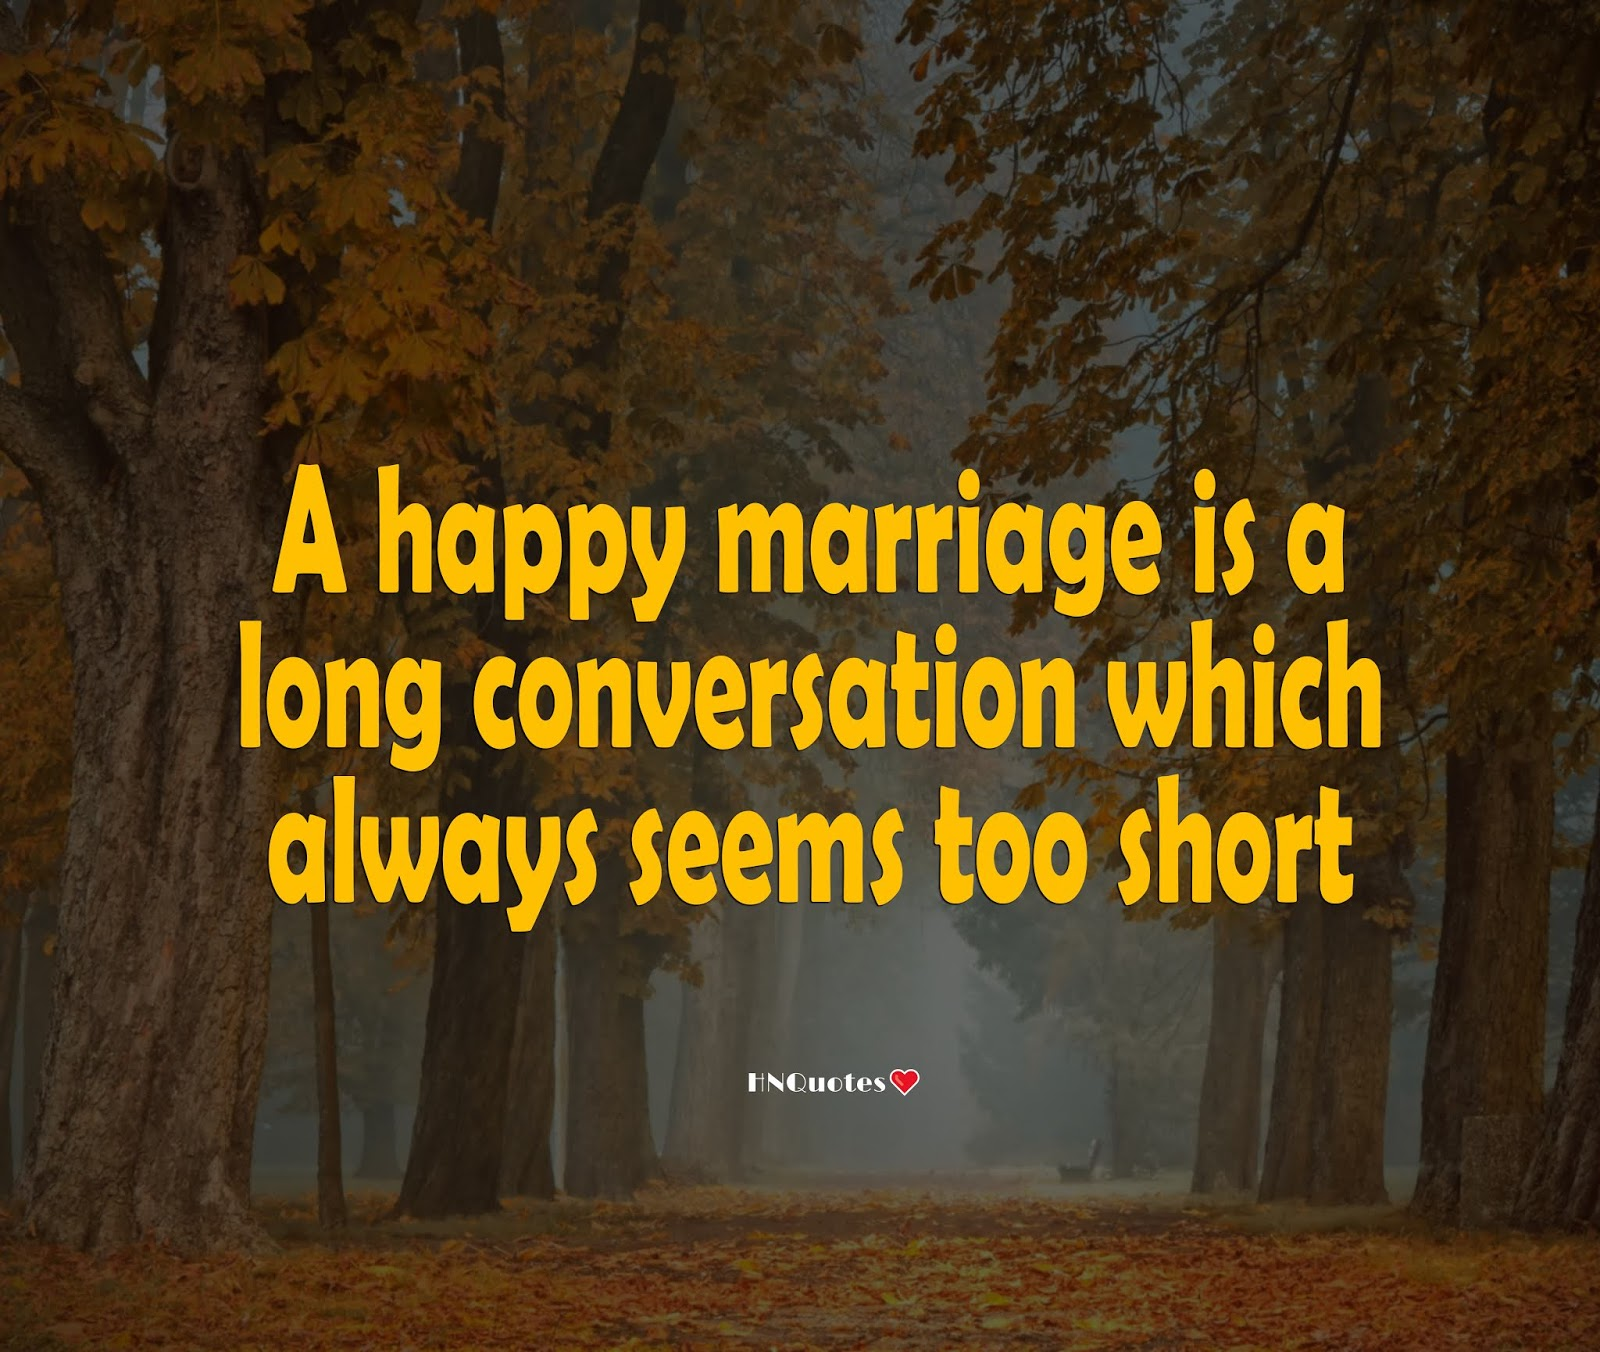 Romantic-Quotes-Beautiful-Sayings-about-Love-Quotes-for-Couples-11-[HNQuotes]